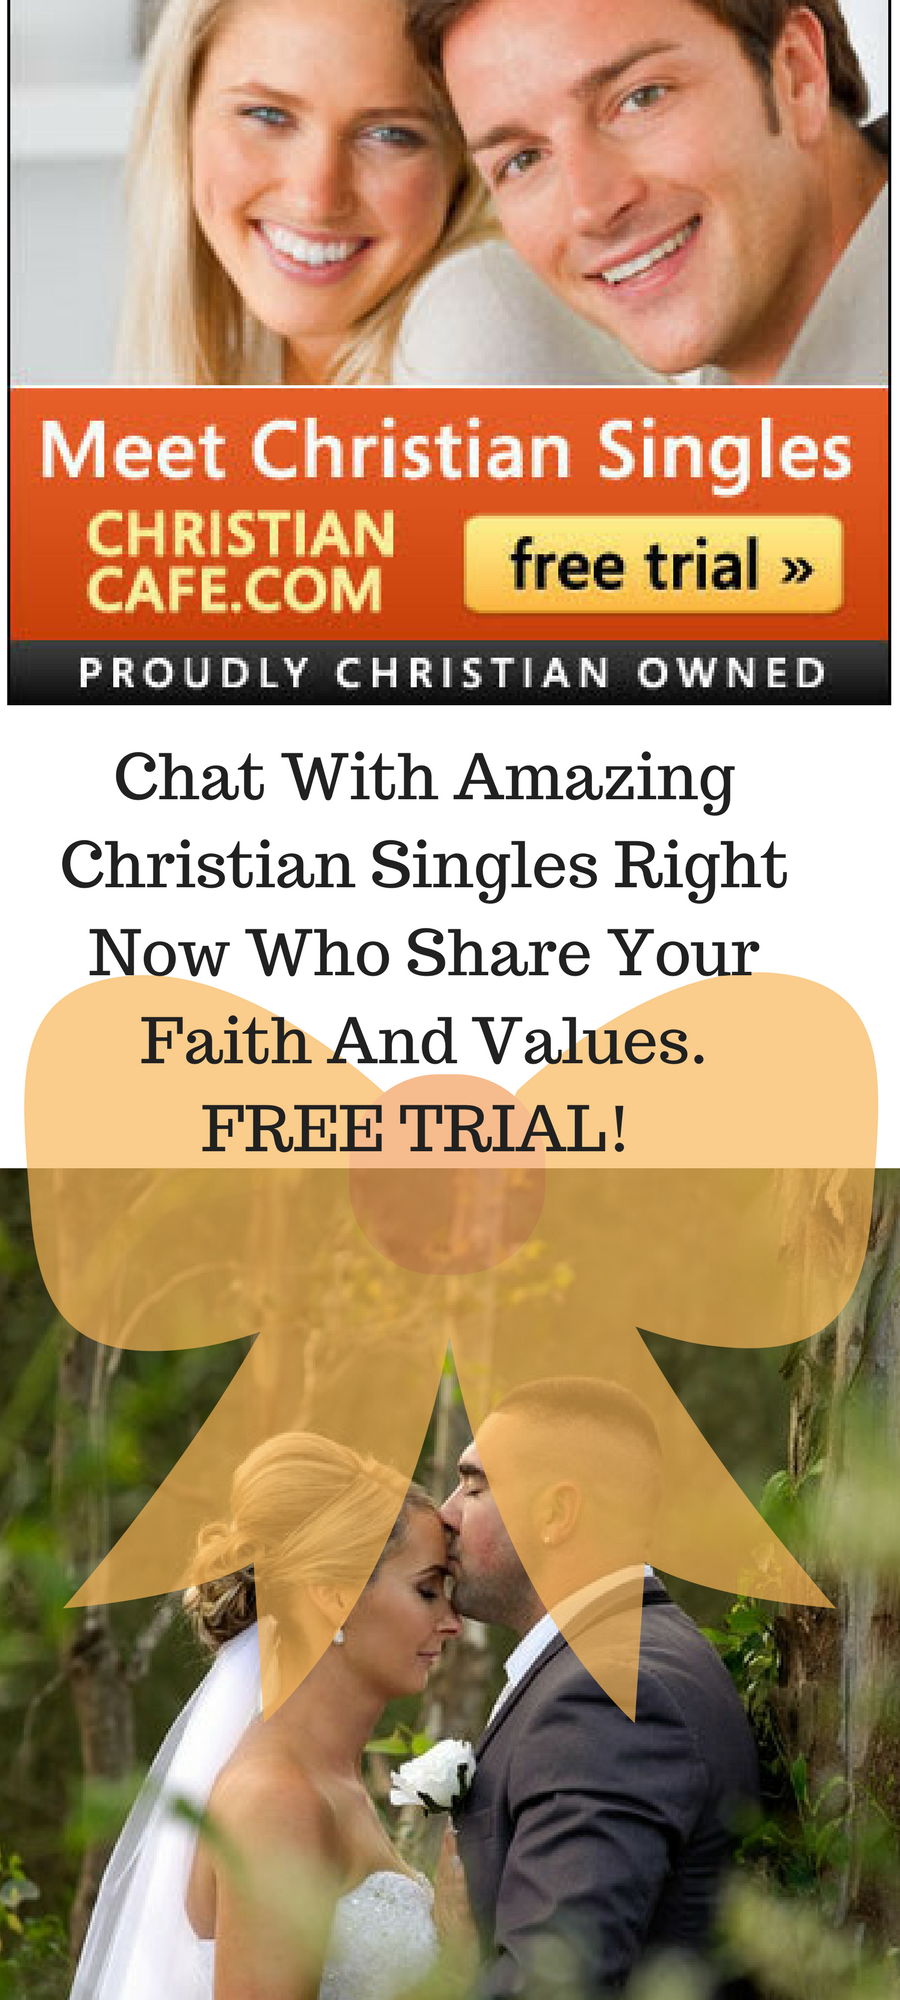 Christian singles chat rooms